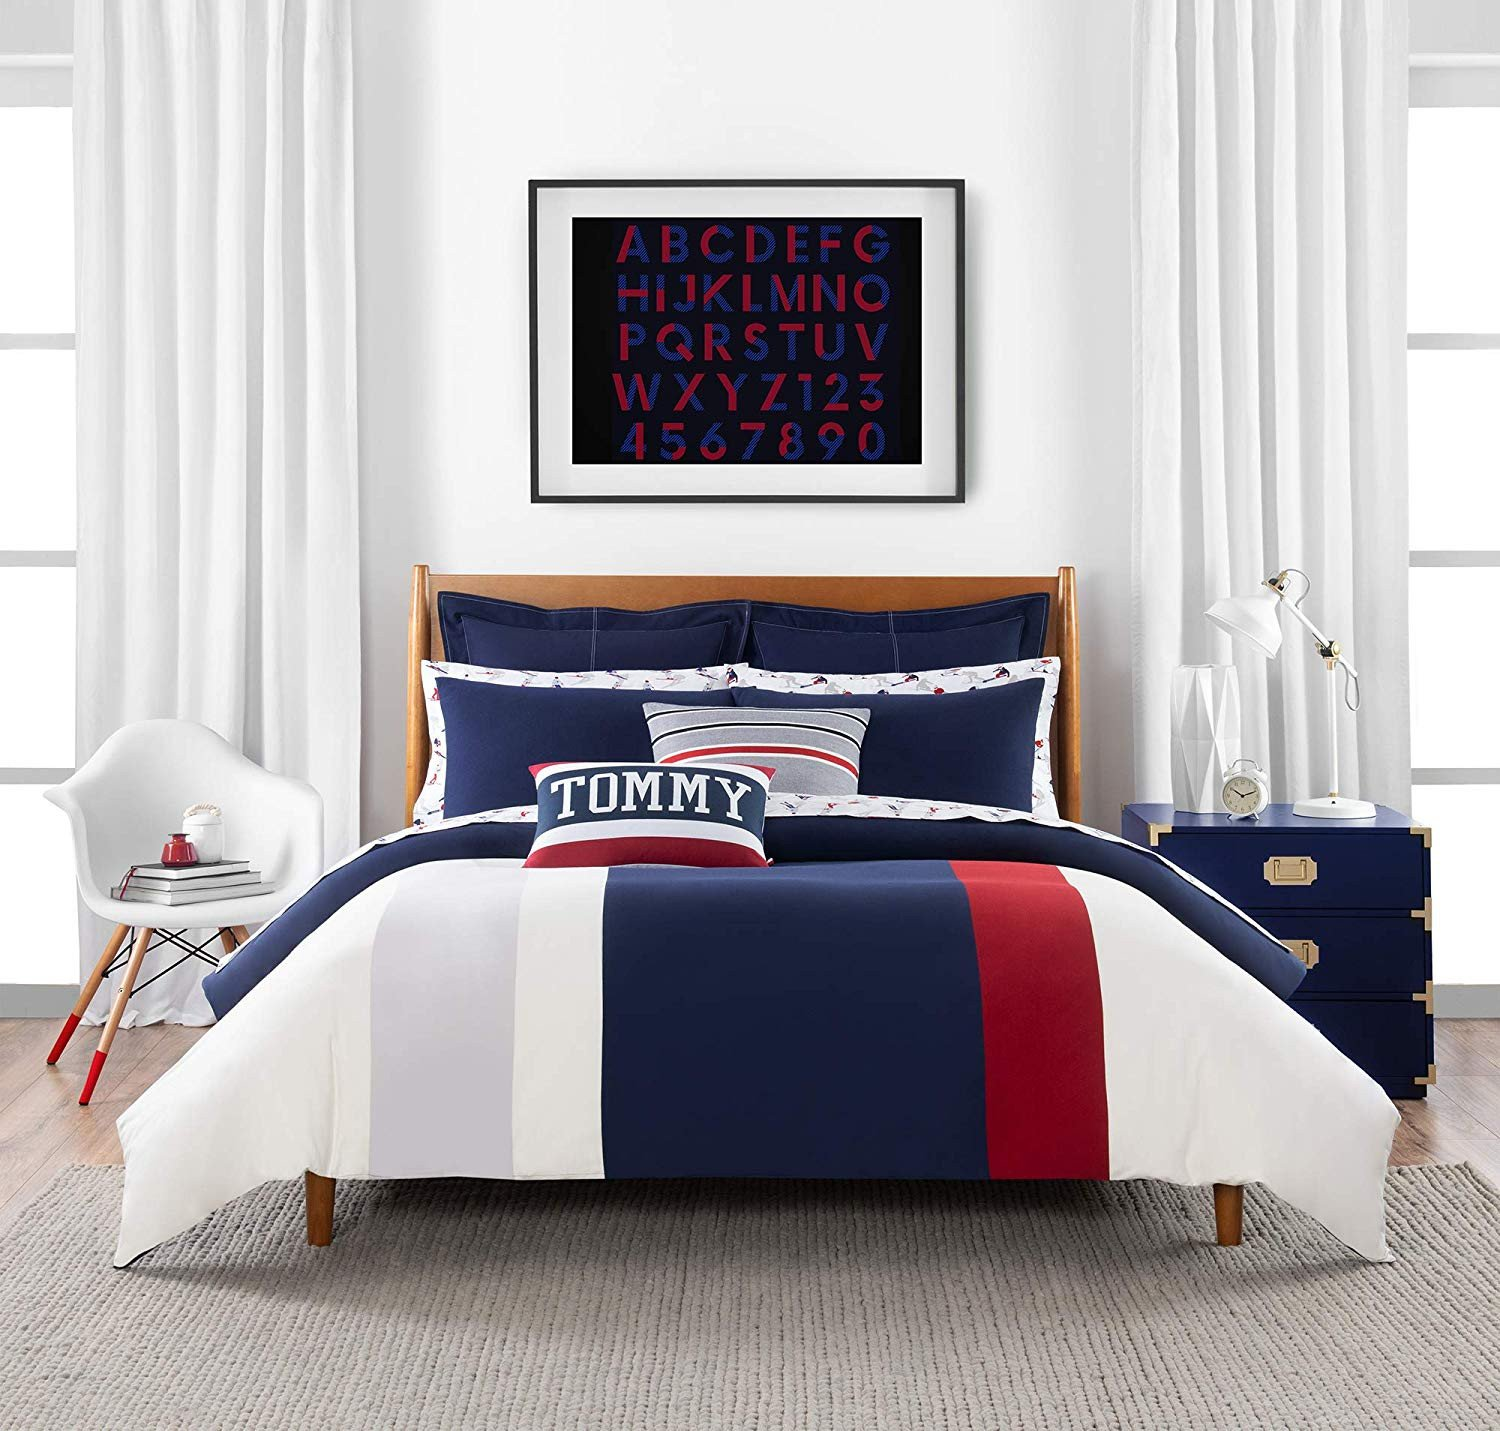 Best Quality Bedroom Furniture Luxury Amazon tommy Hilfiger Clash Of 85 Stripe Bedding